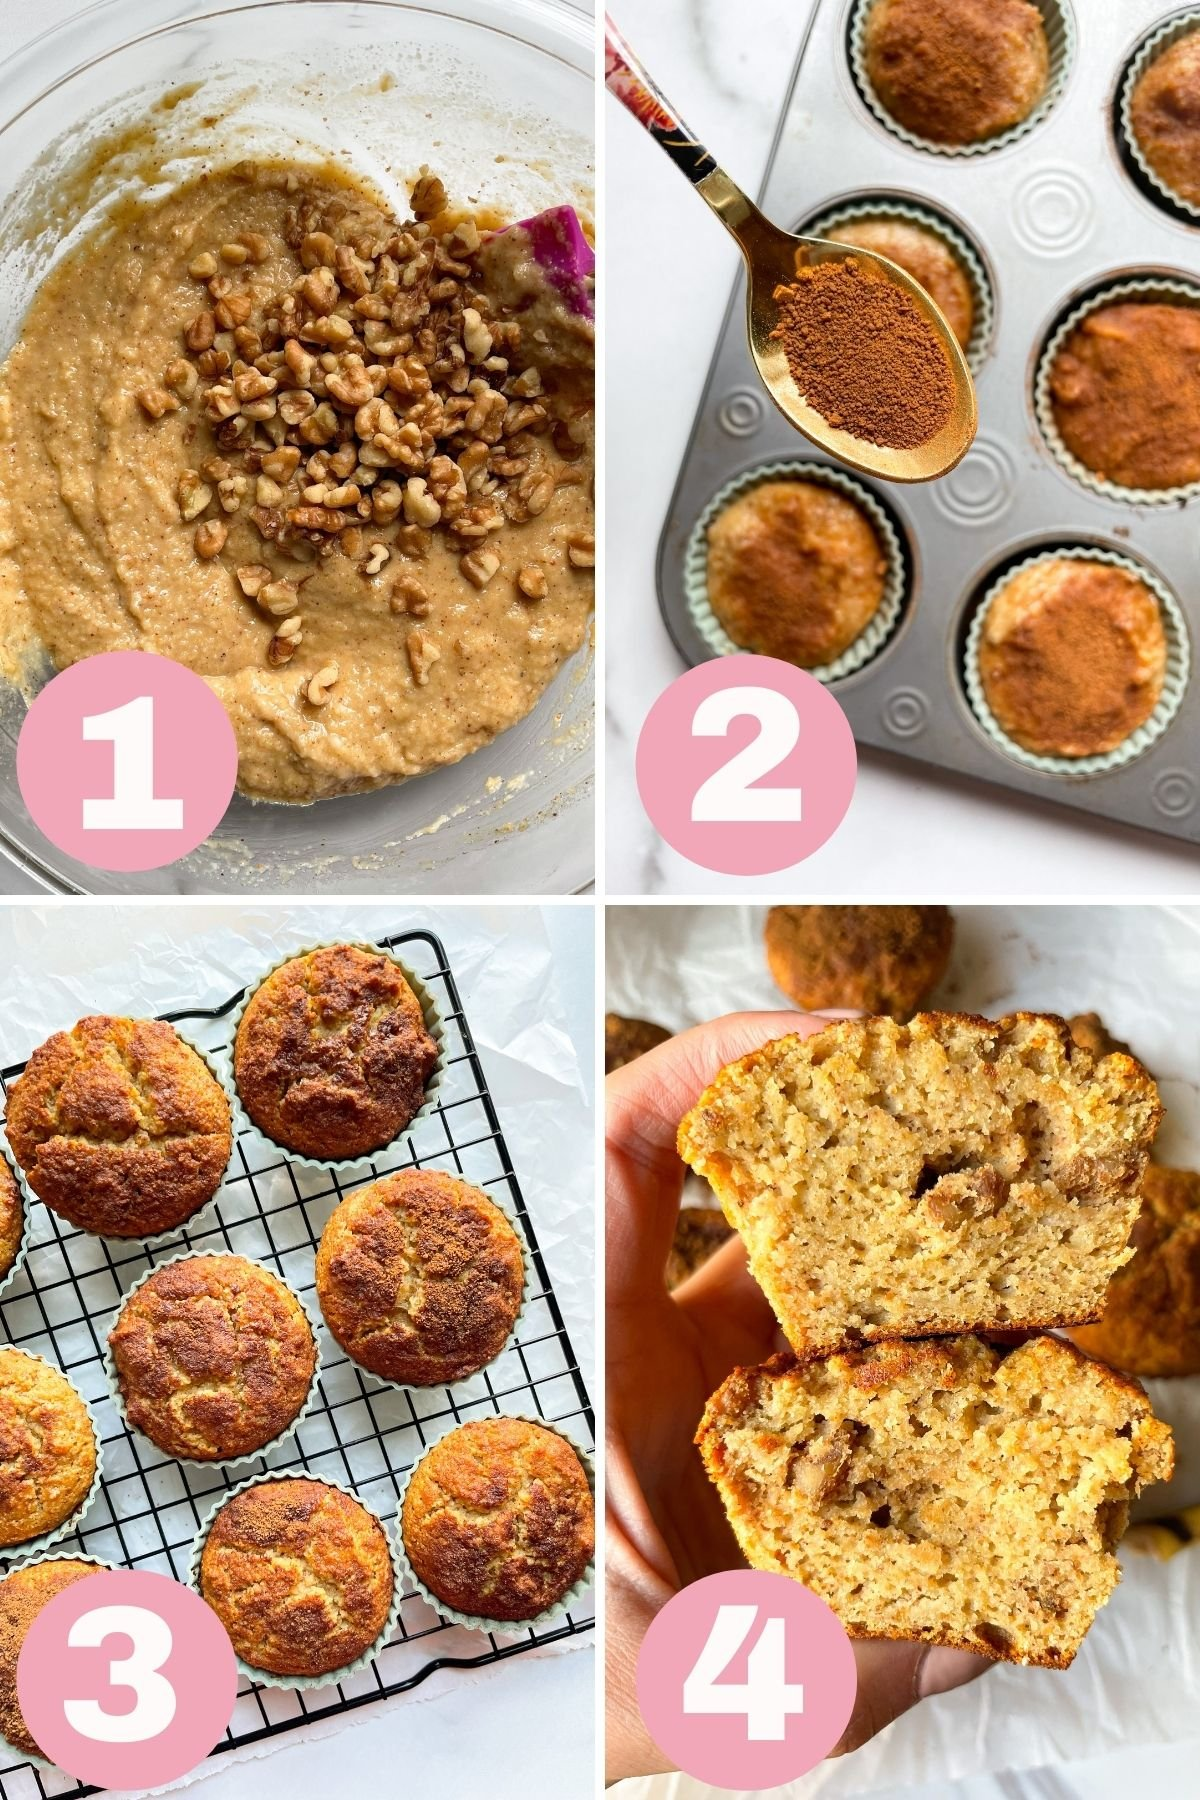 how to make almond flour banana nut muffins step by step